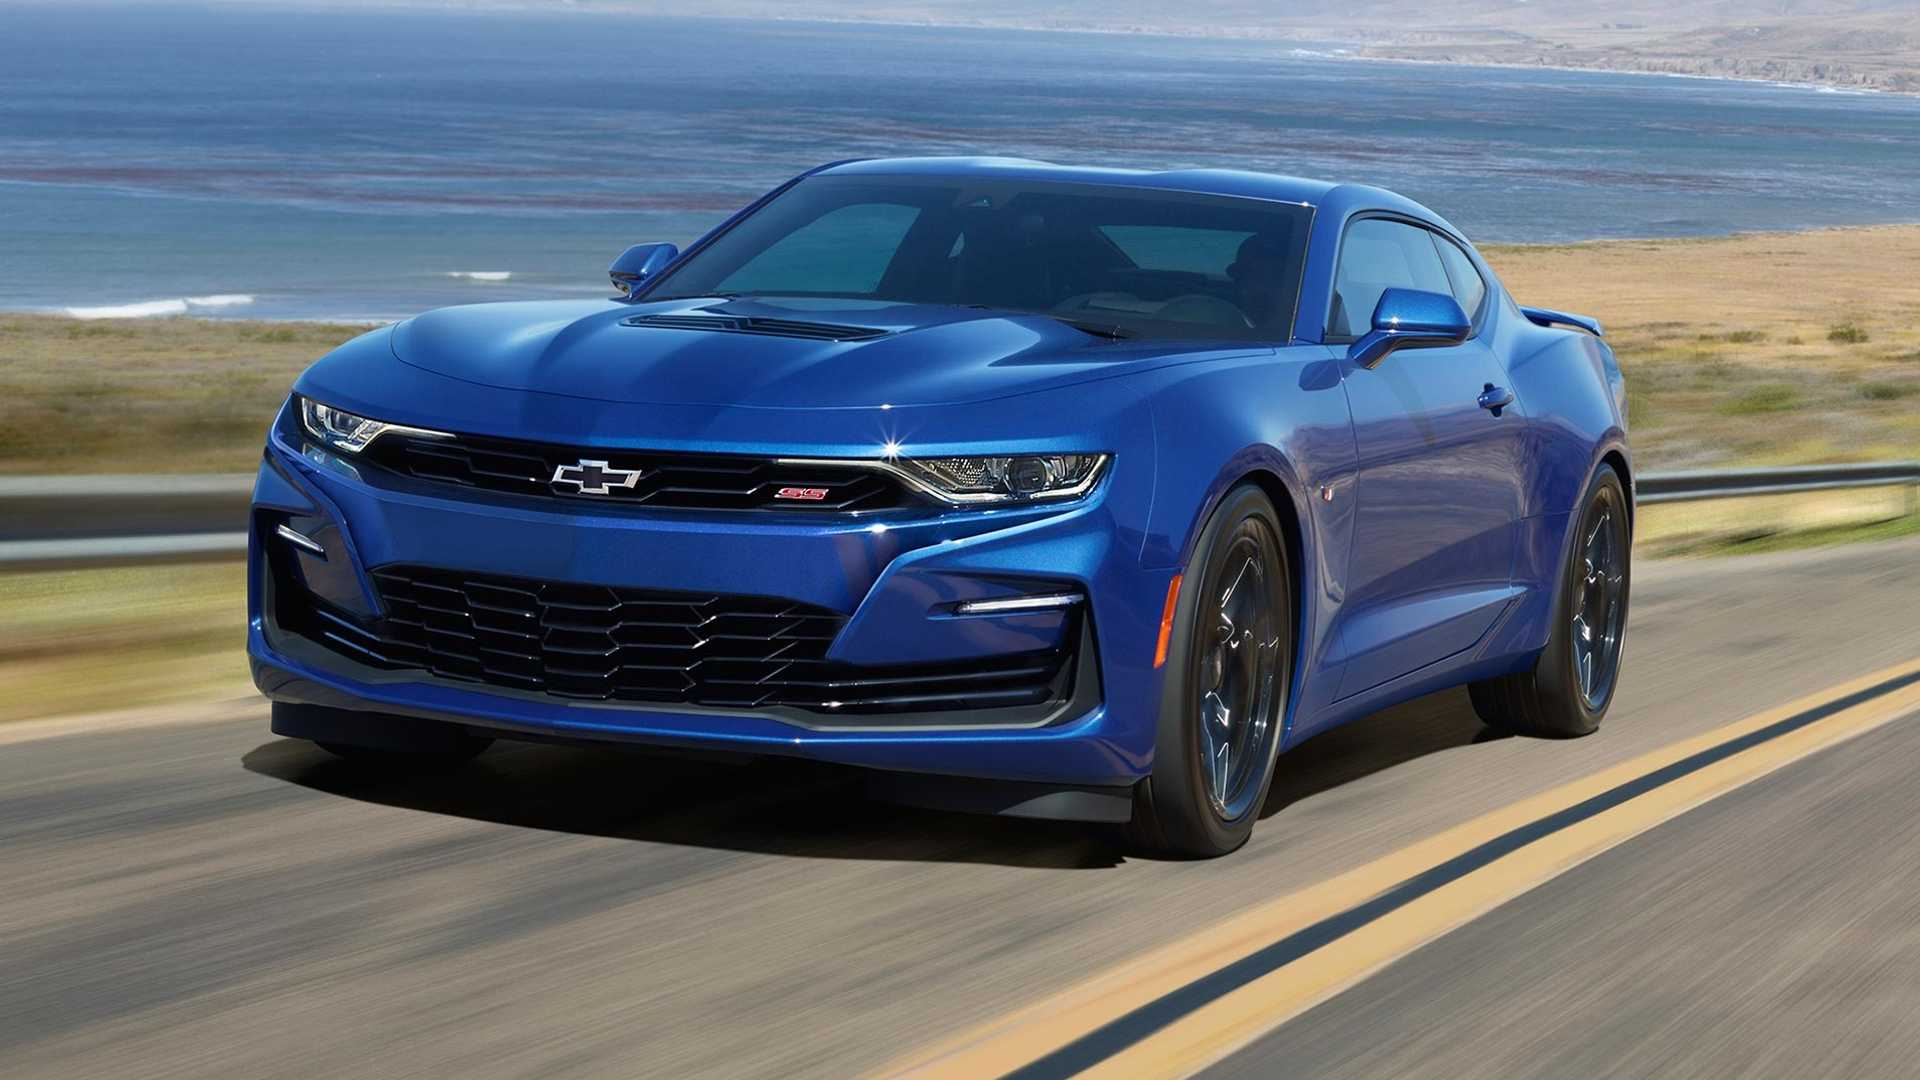 2021 Chevrolet Camaro Lt1 Release Date, Color Changes 2021 Chevy Camaro Zl1 Colors, Configurations, Release Date